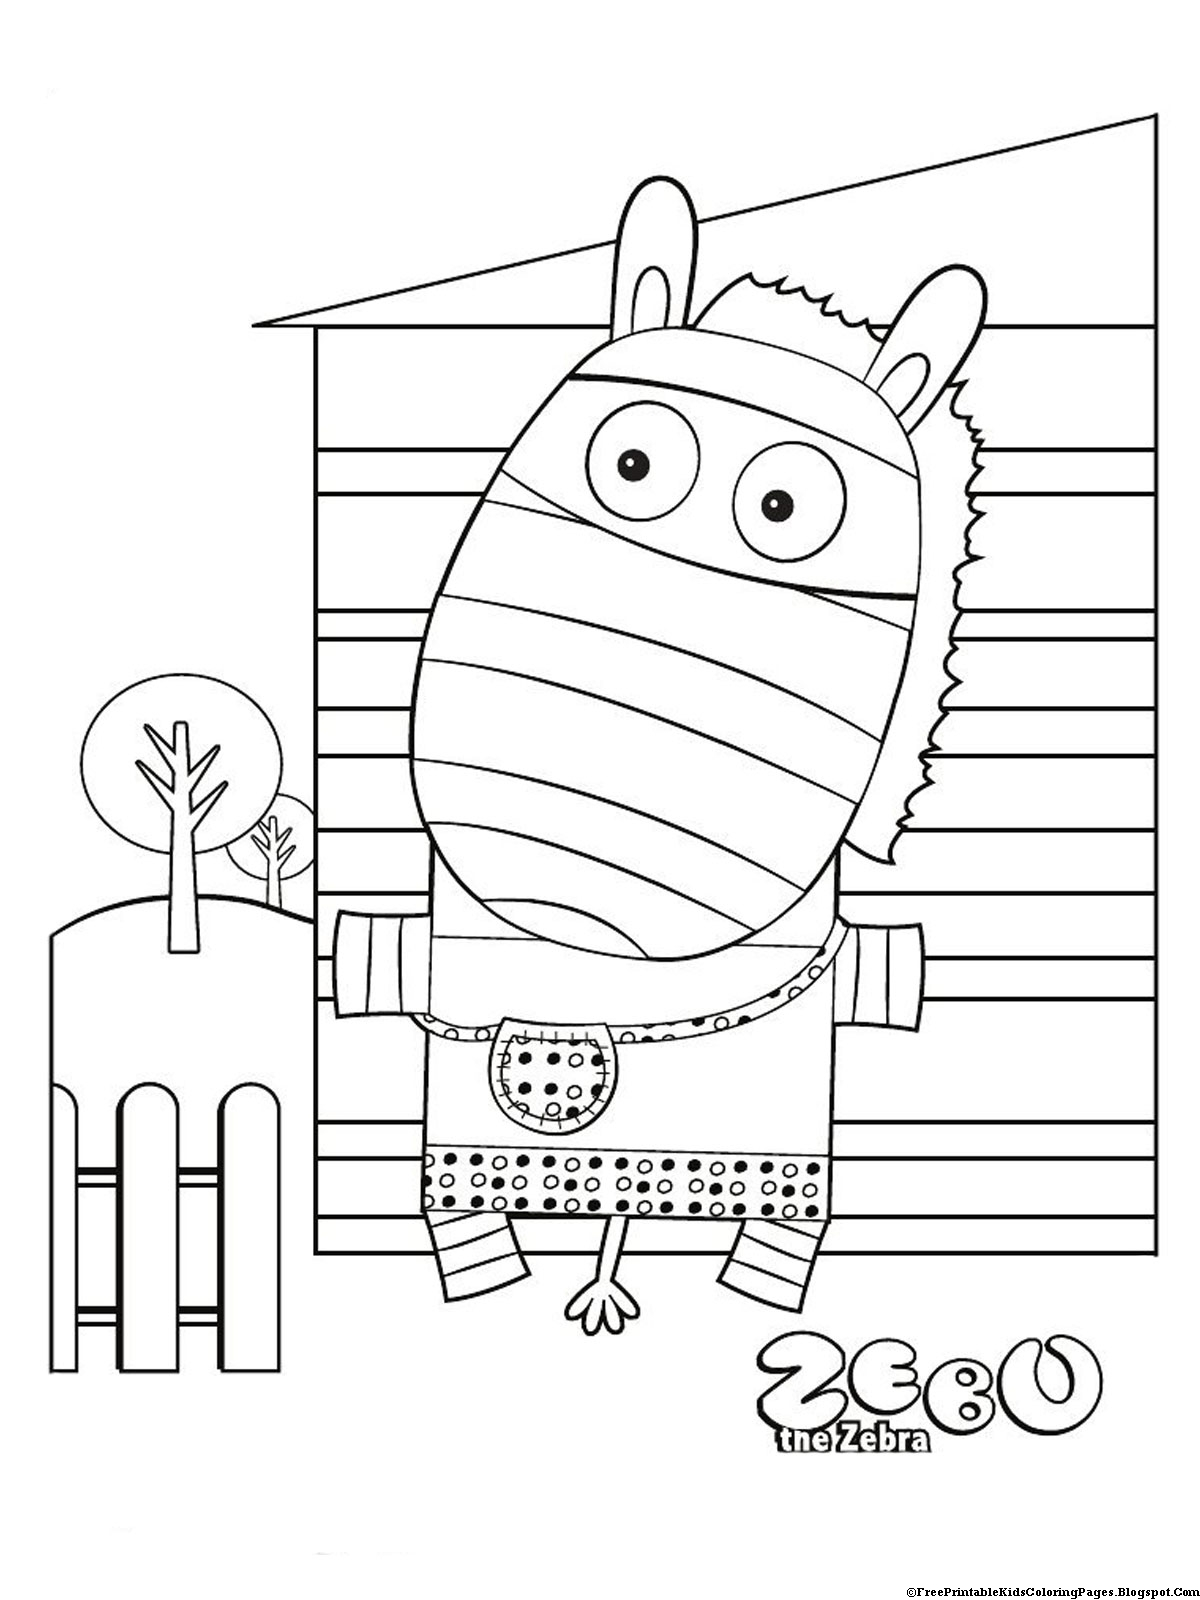 free zebra coloring pages to print zebra coloring pages free printable kids coloring pages print coloring to zebra pages free